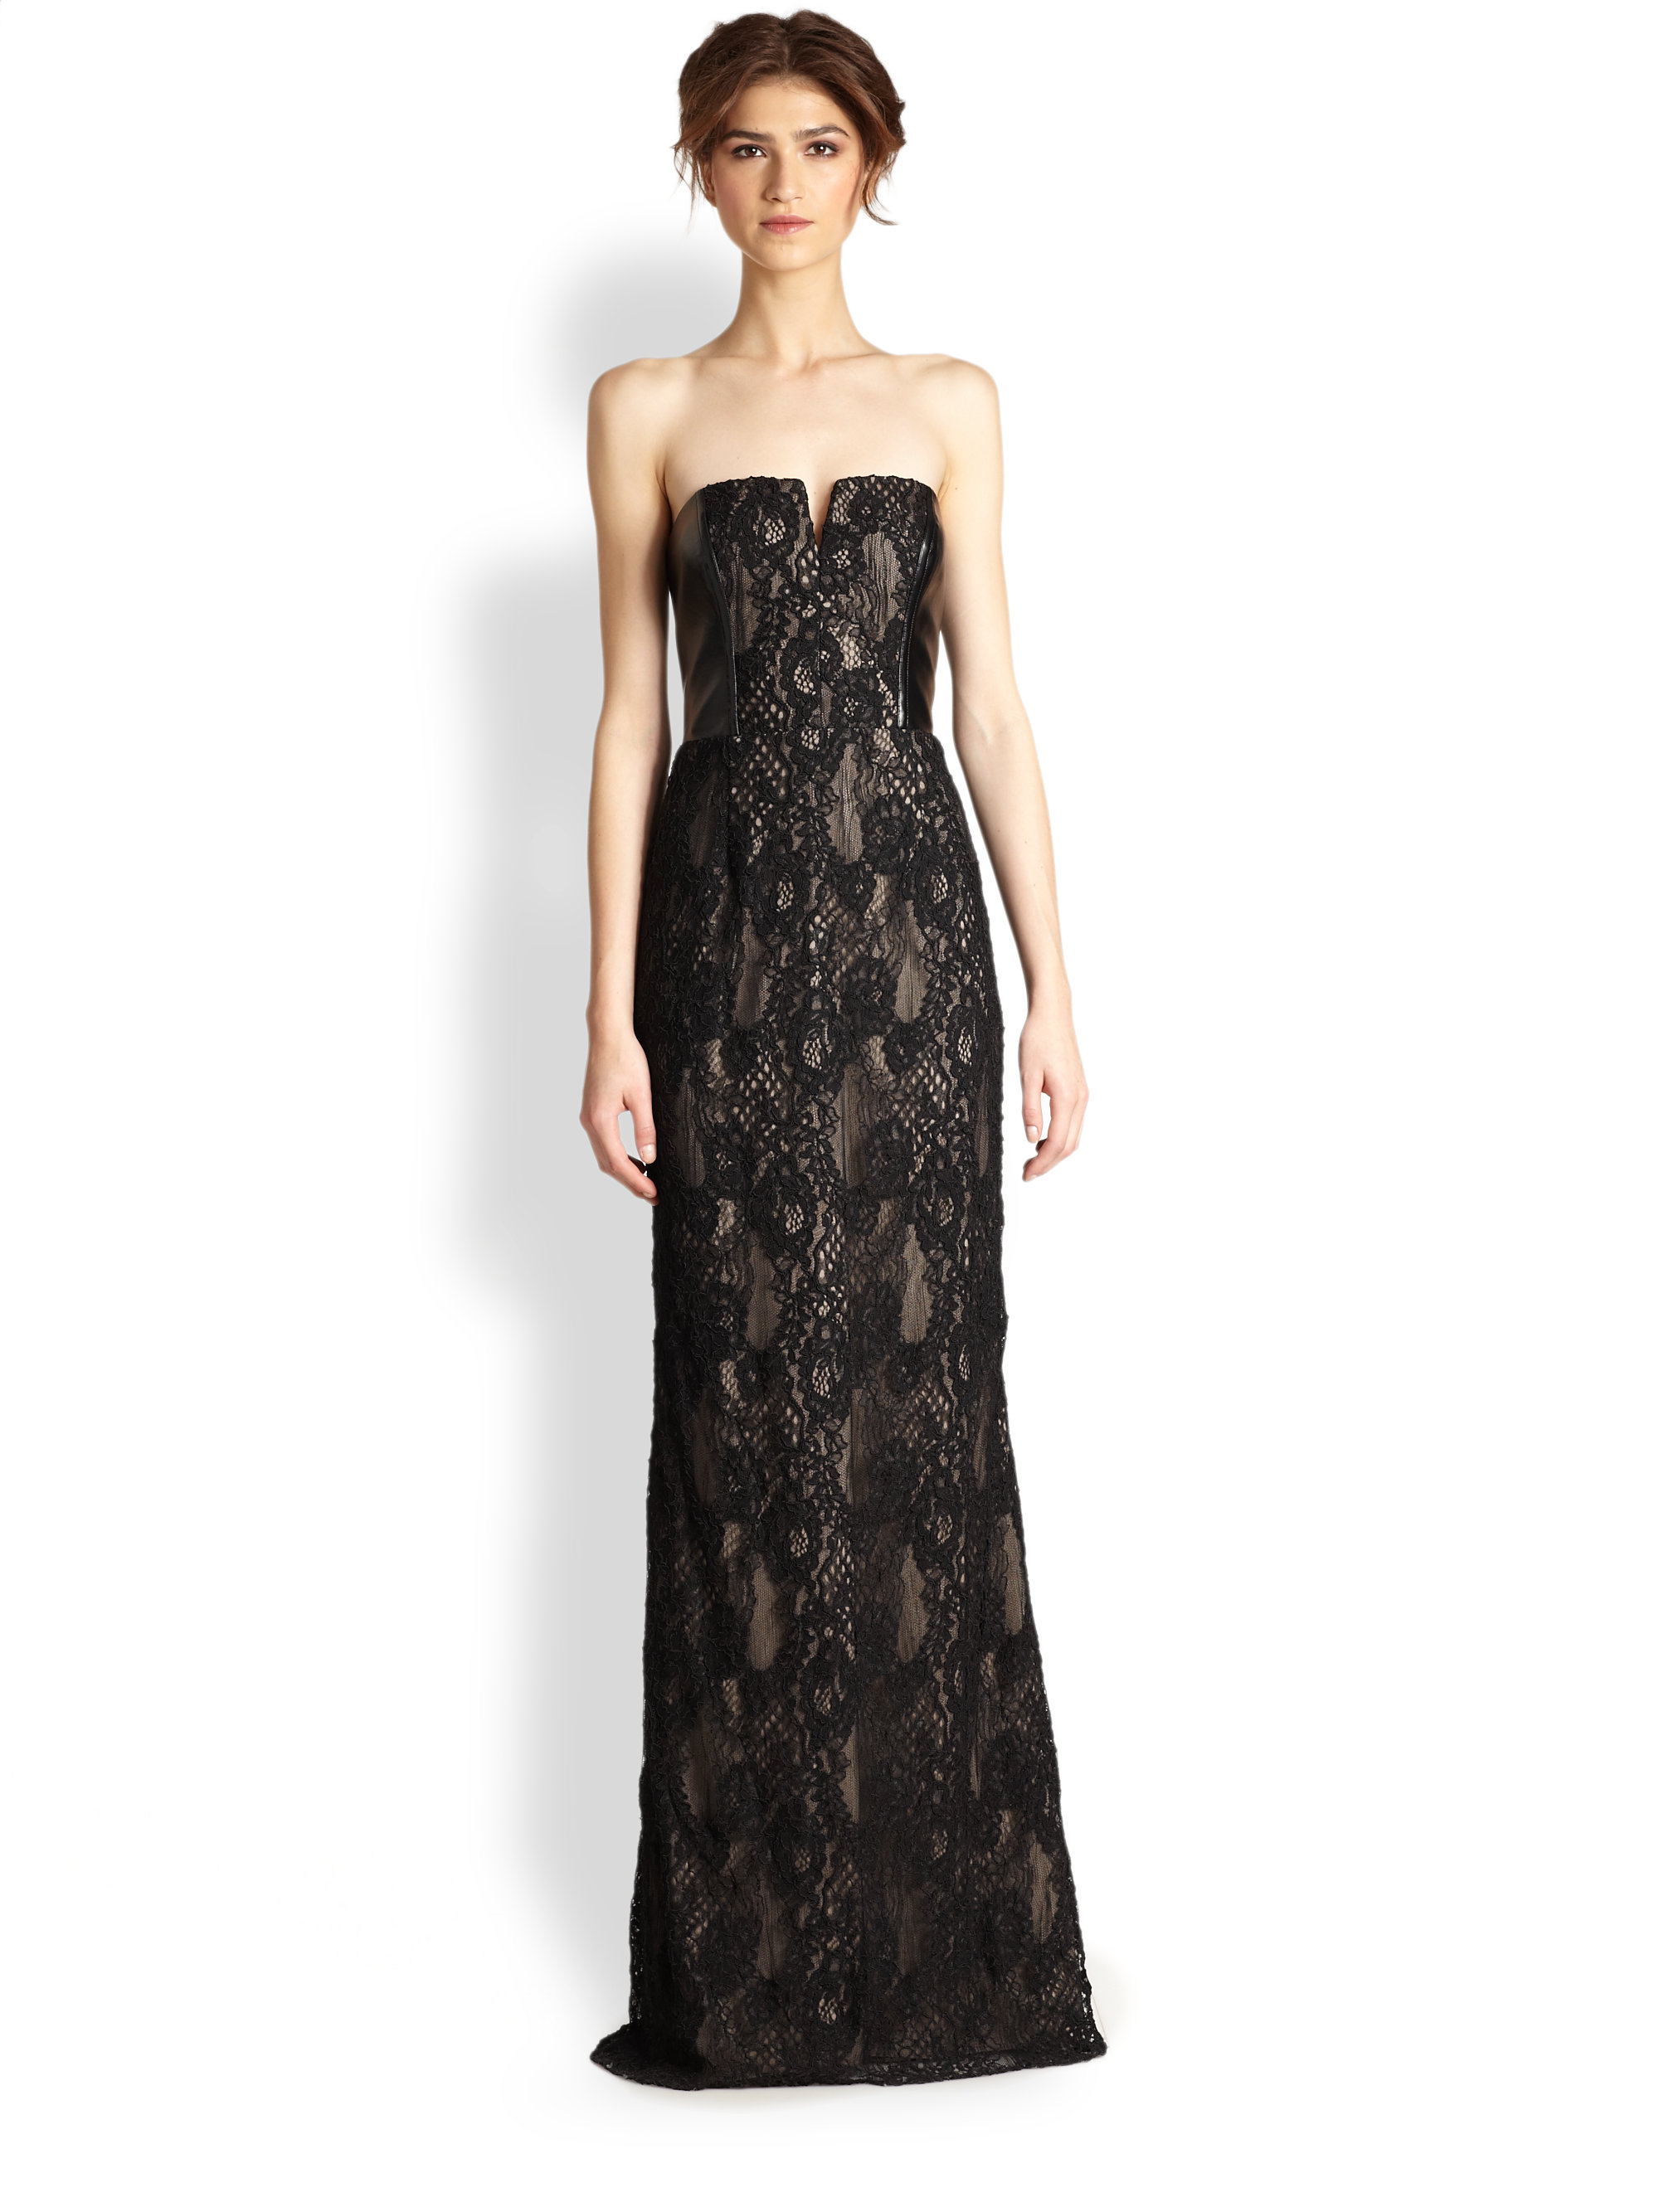 Lyst - Aidan Mattox Strapless Lace Gown in Black